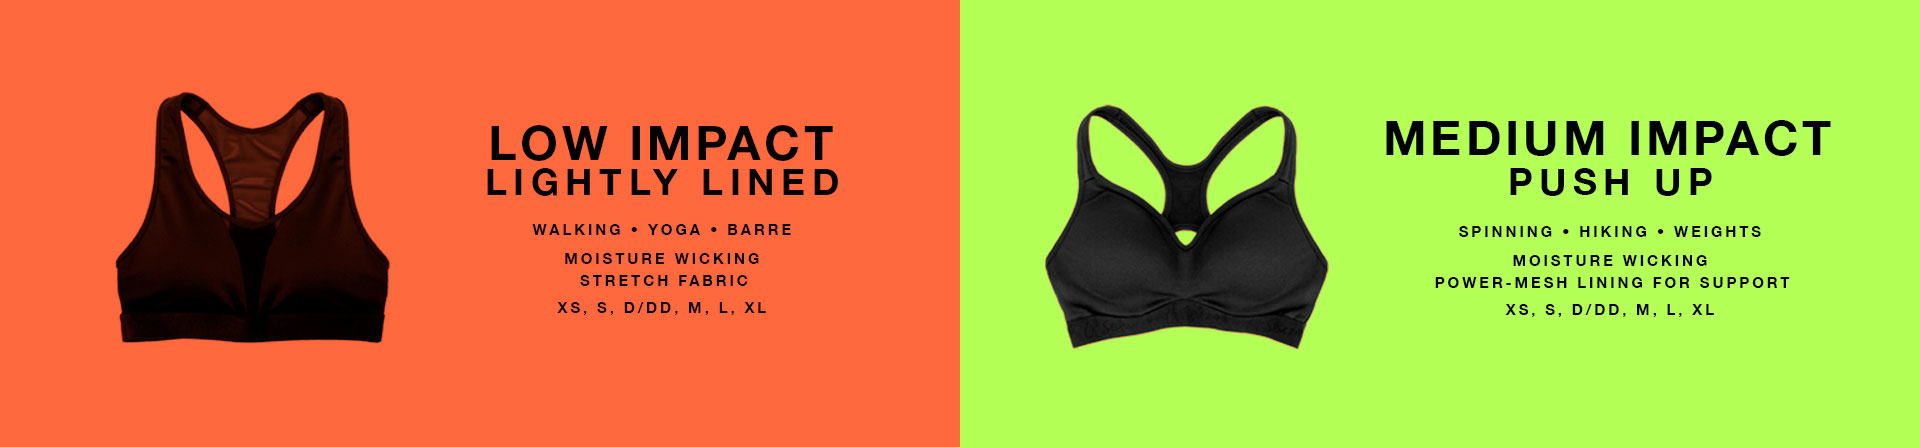 Low impact lightly lined. Walking, yoga, barre. Moisture wicking stretch fabric. XS, S, D/DD, M, L, XL. Medium impact. Push up. Spinning, hiking, weights. Moisture wicking power-mesh lining for support.